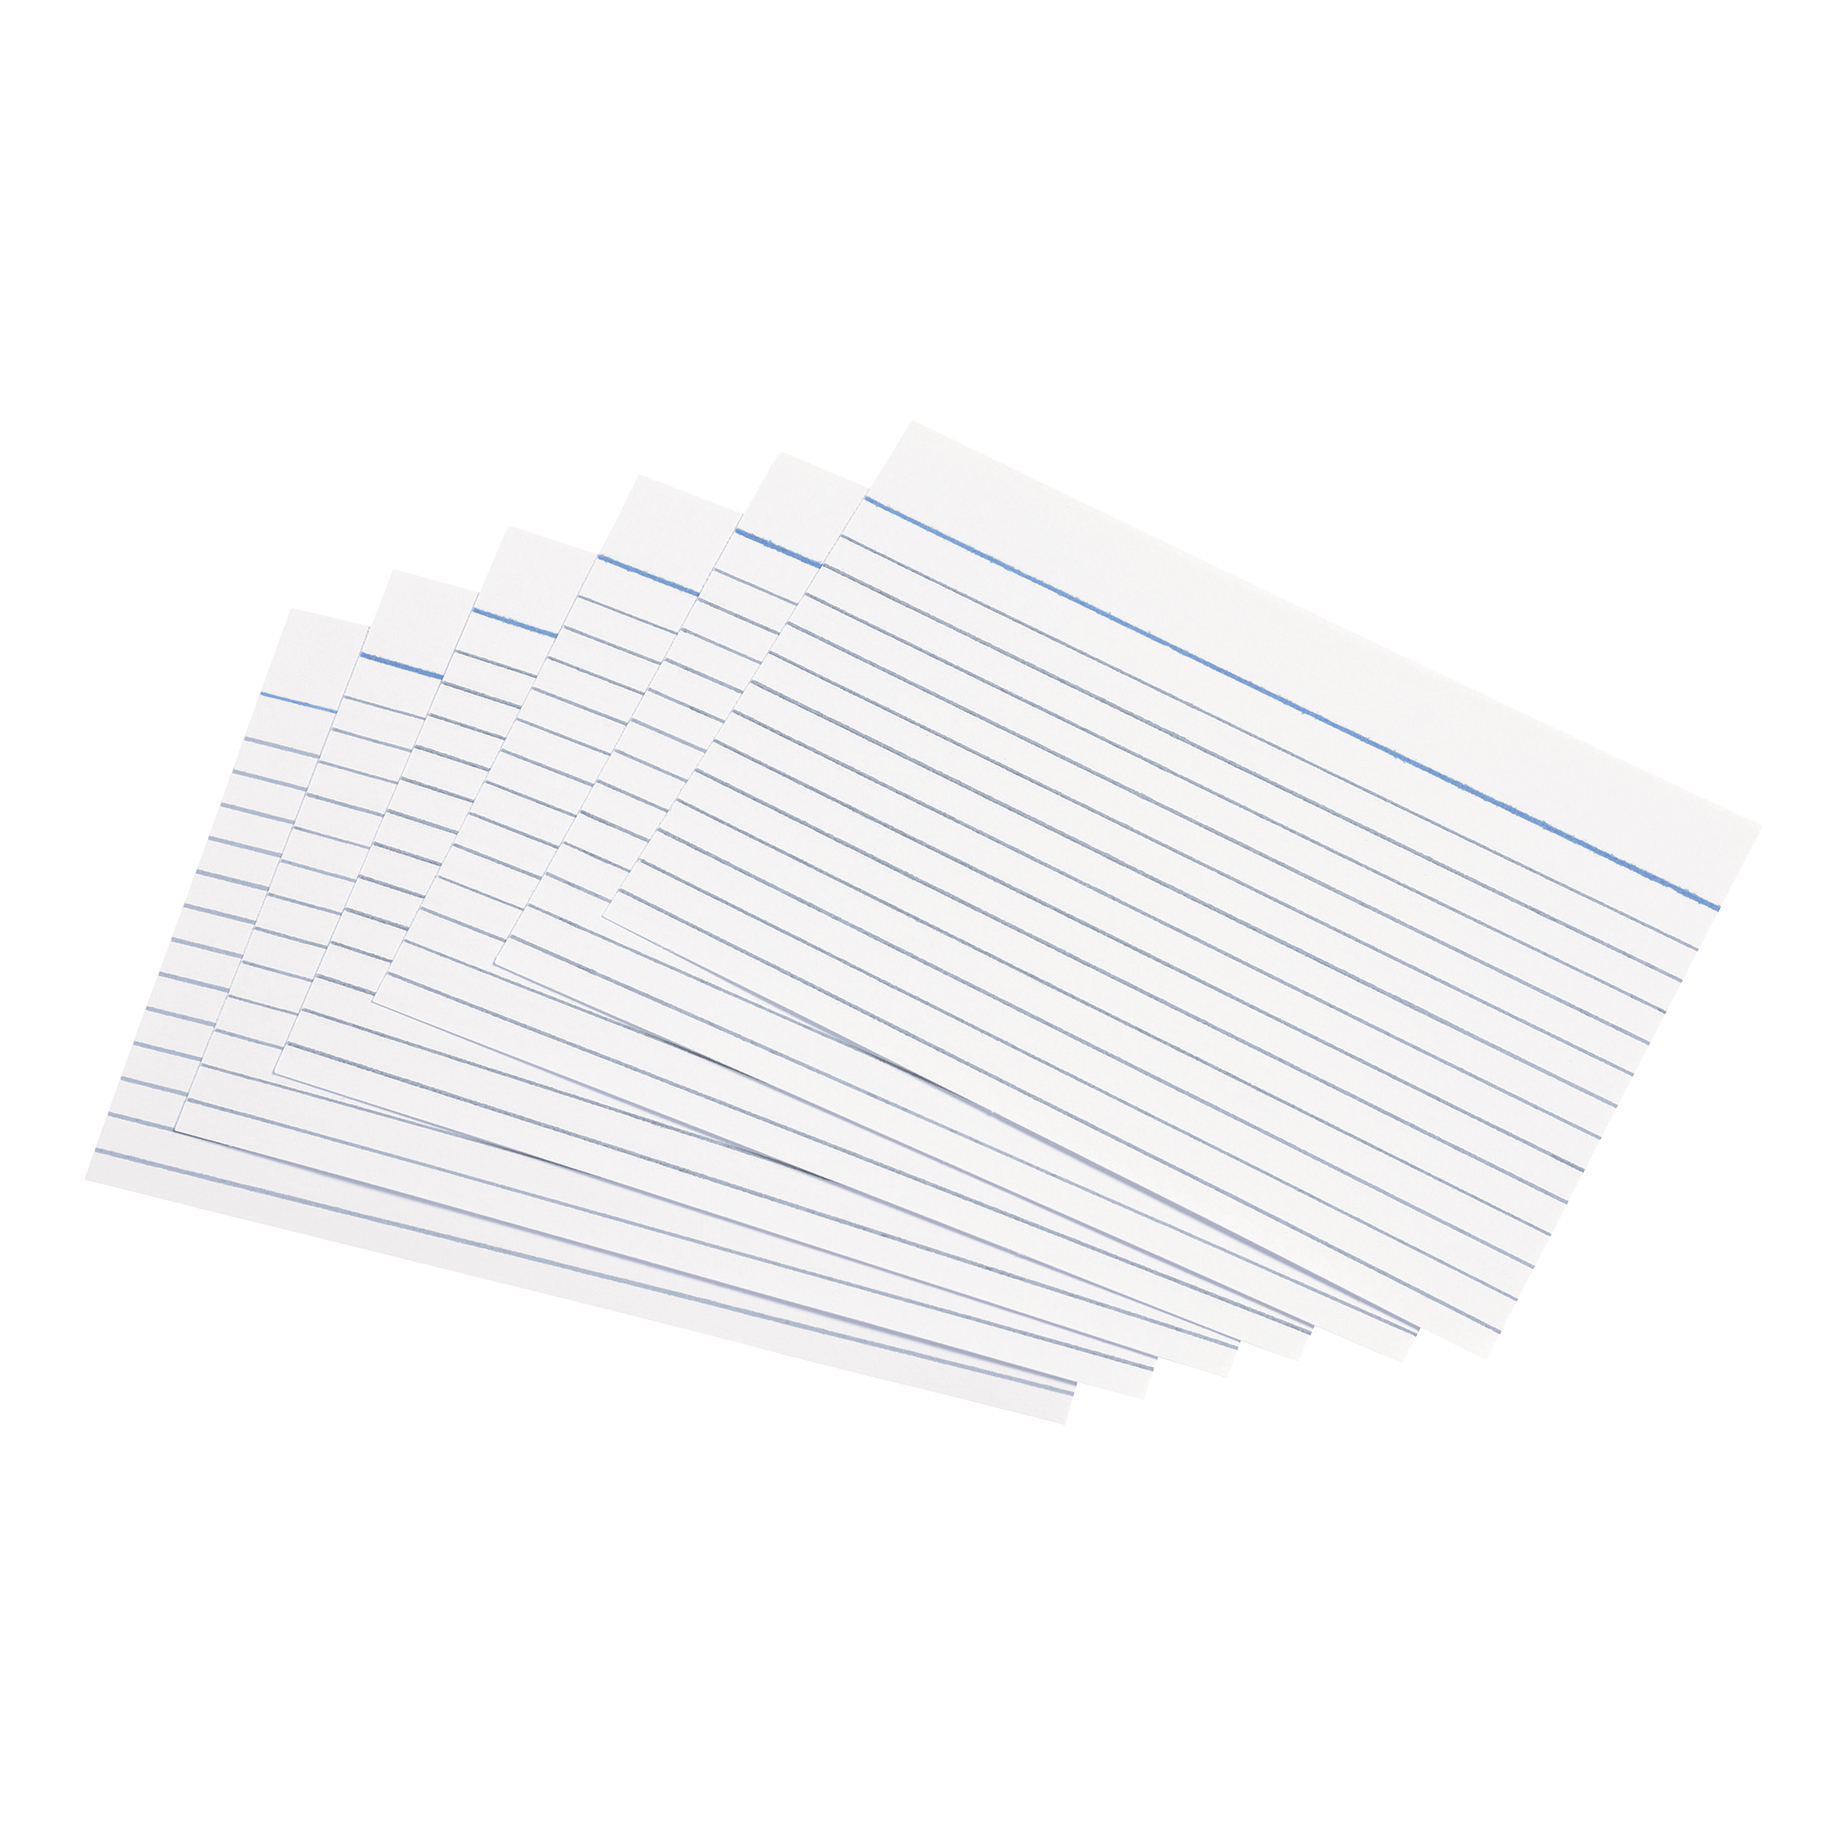 Record Cards 5 Star Office Record Cards Ruled Both Sides 6x4in 152x102mm White Pack 100